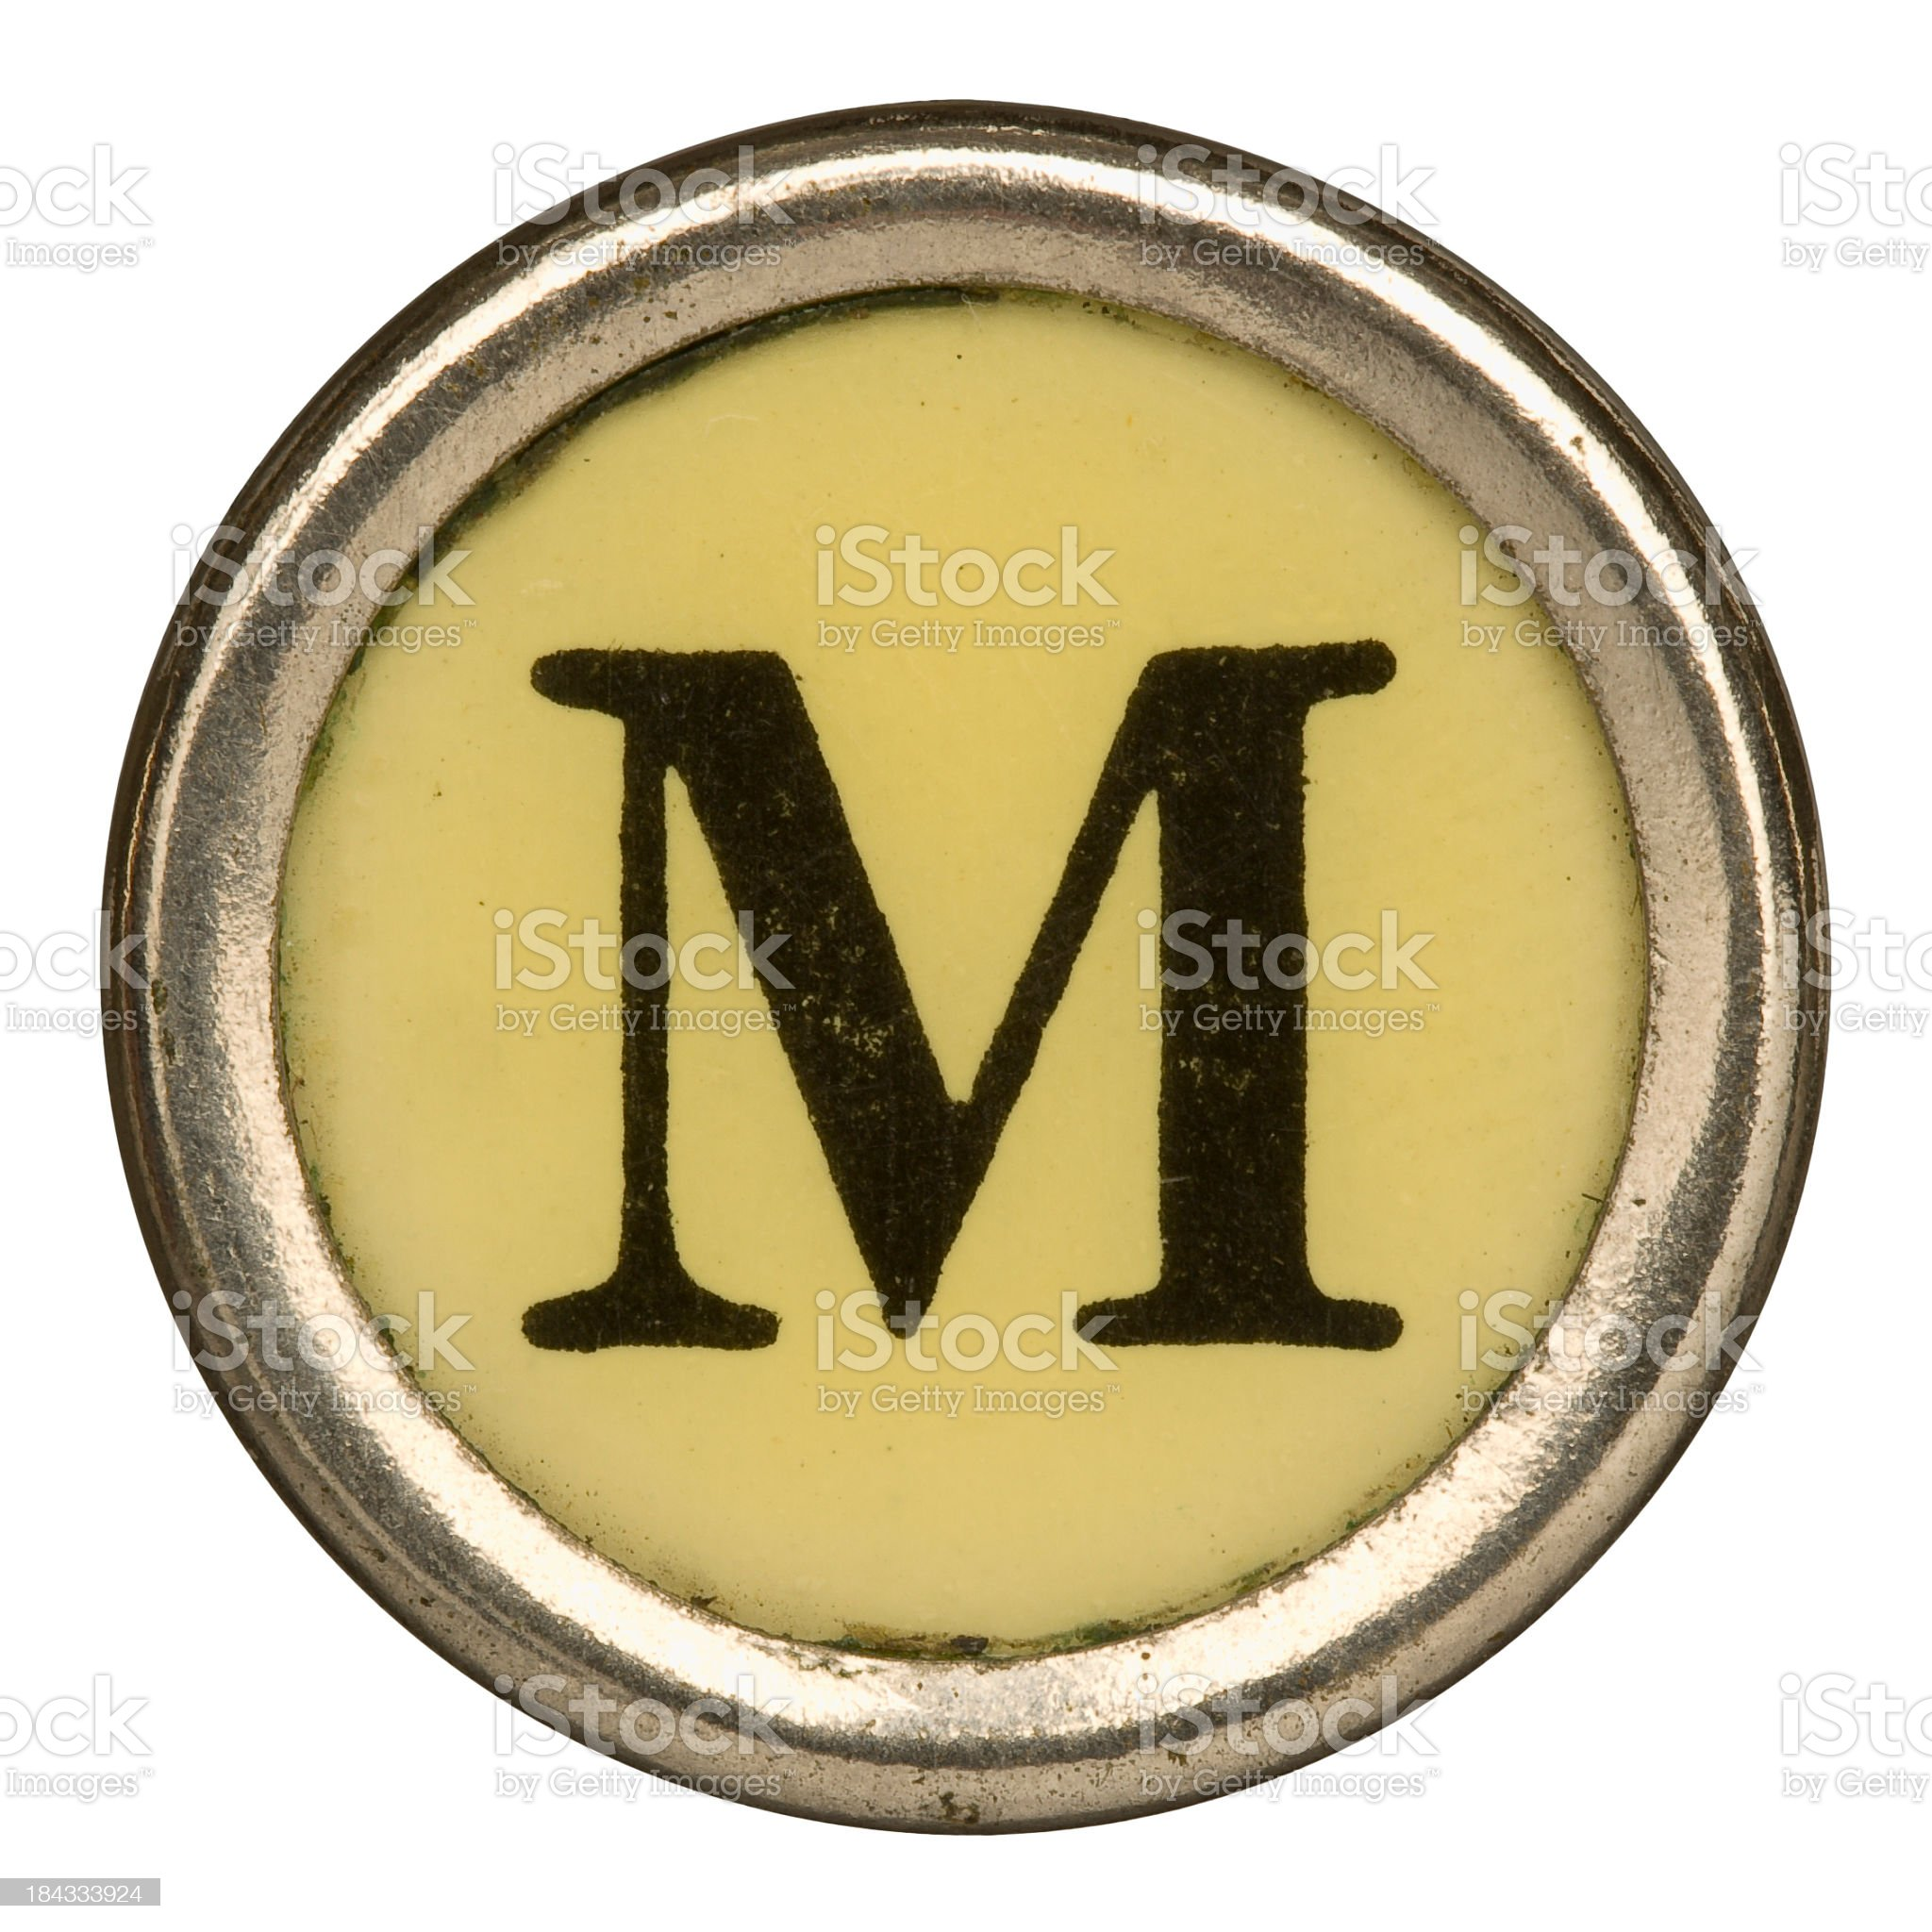 Alphabet - Letter M from old Manual Typewriter. royalty-free stock photo